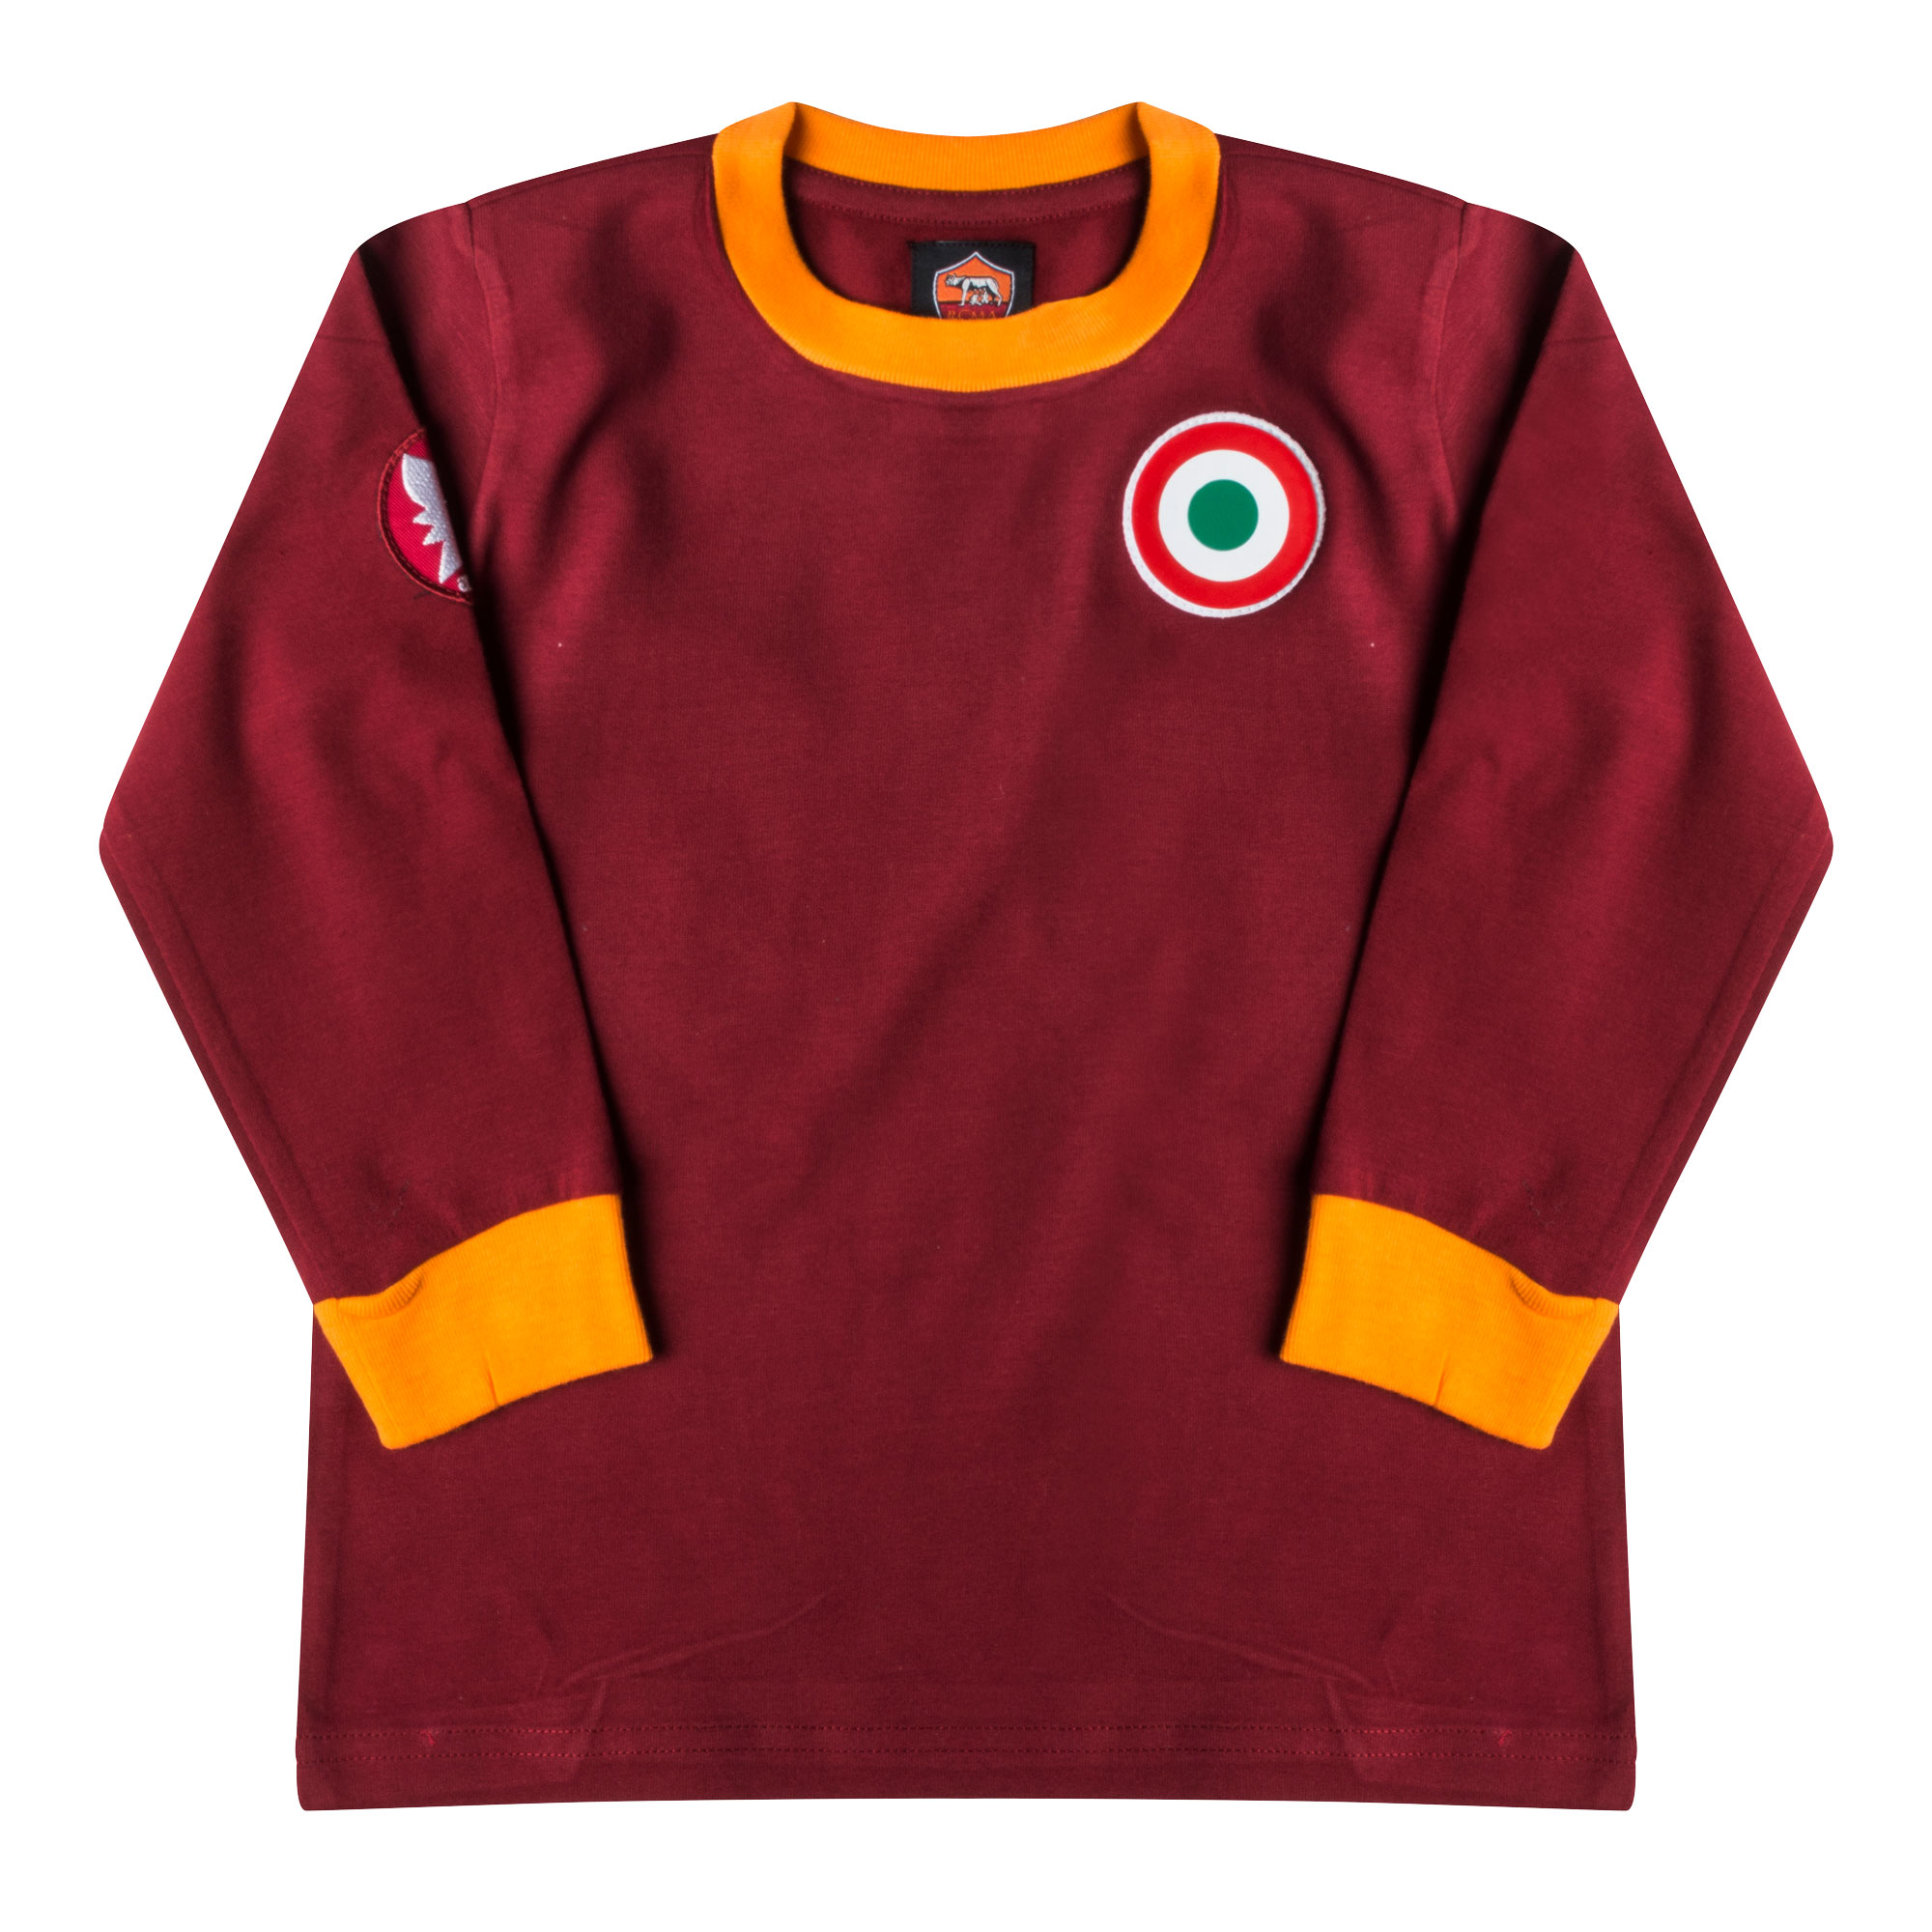 COPA AS Roma 'My First Football Shirt' Home Shirt - 98